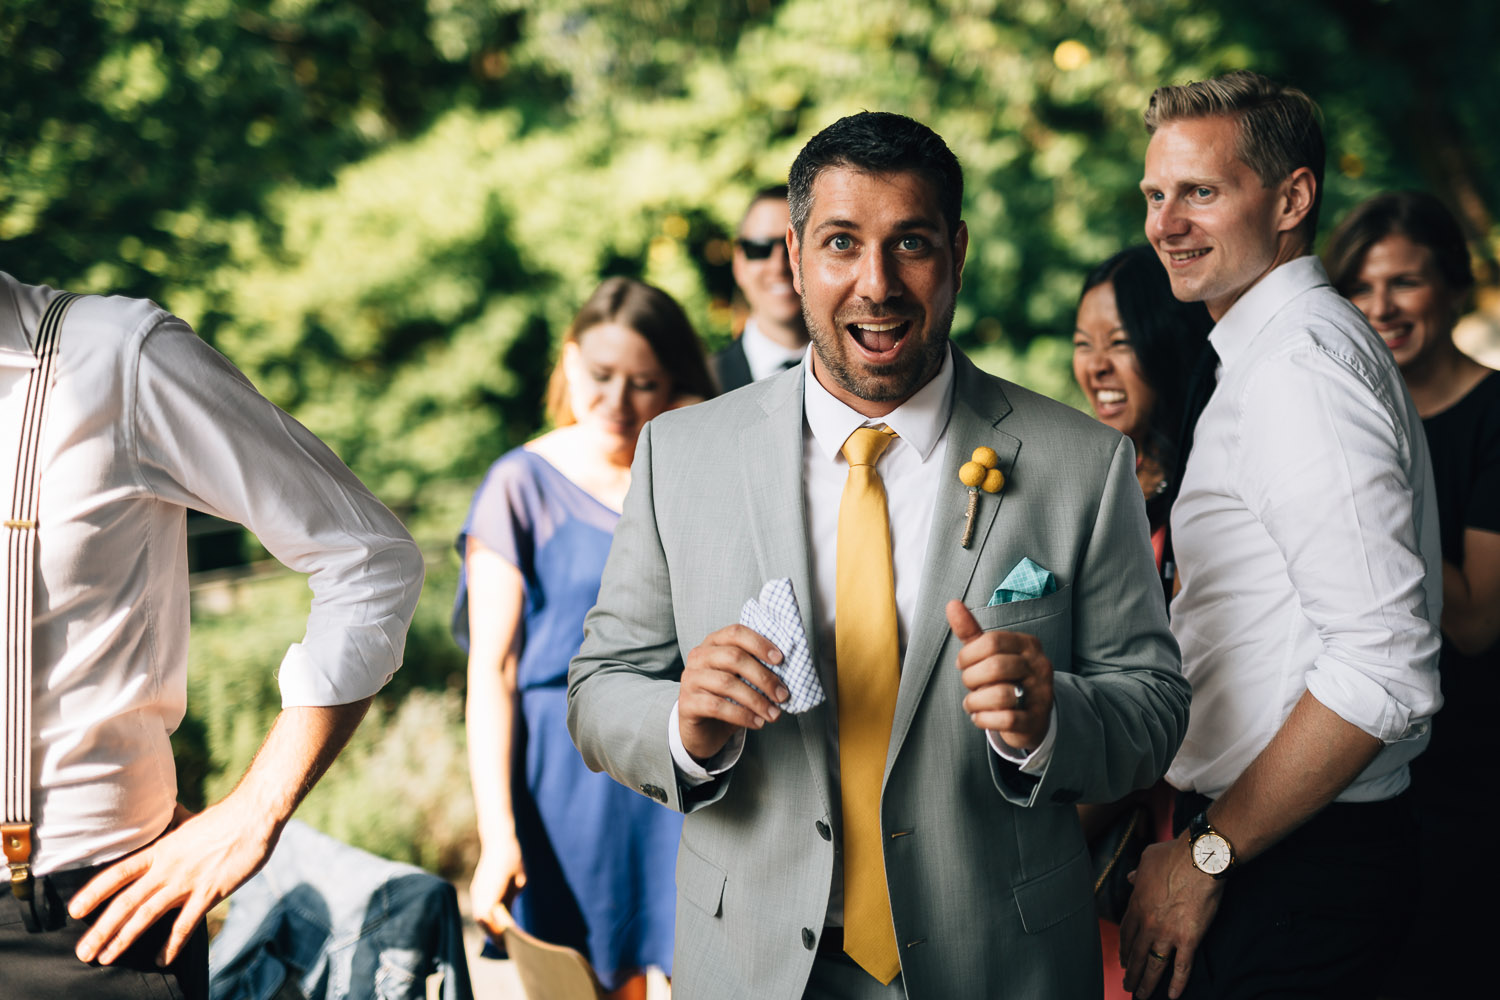 vandusen botanical garden wedding vancouver photographer